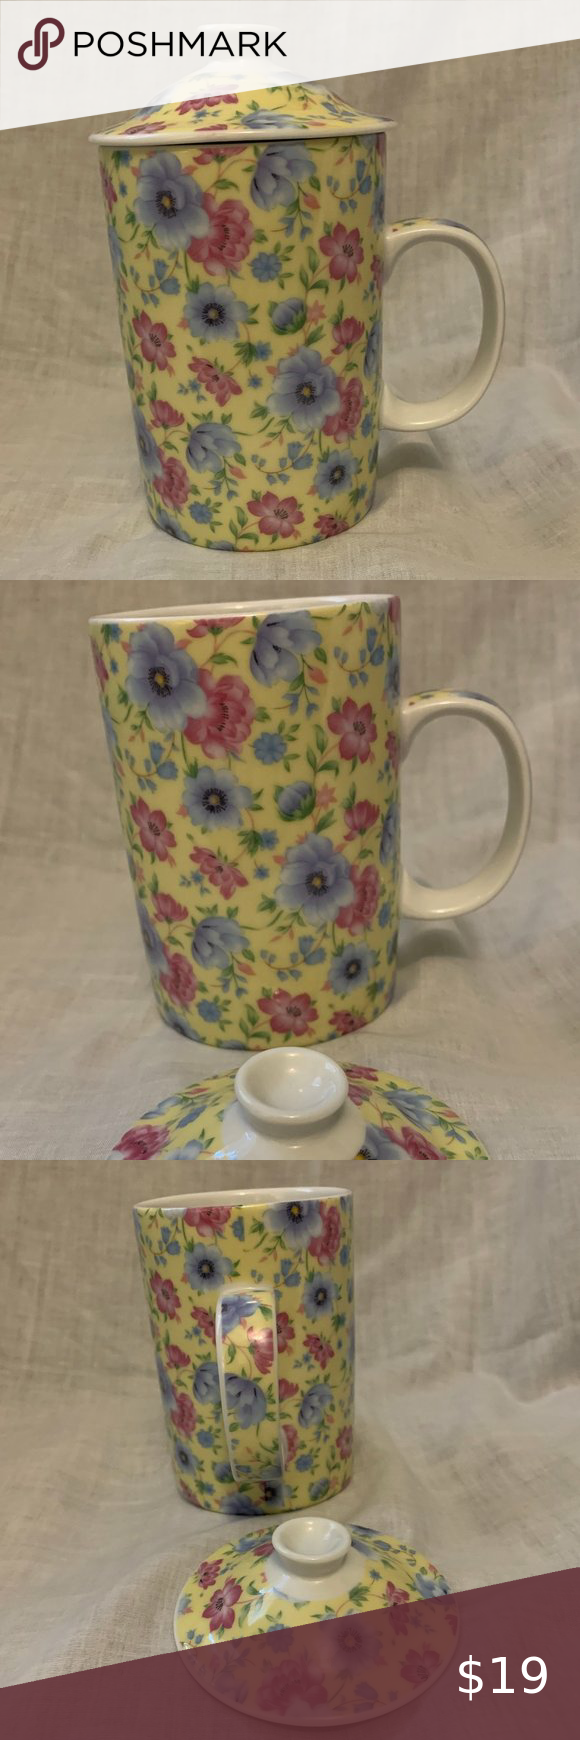 World Market Vintage Tea/Coffee Cup with Lid in 2020 | Vintage tea, Coffee cups, World market